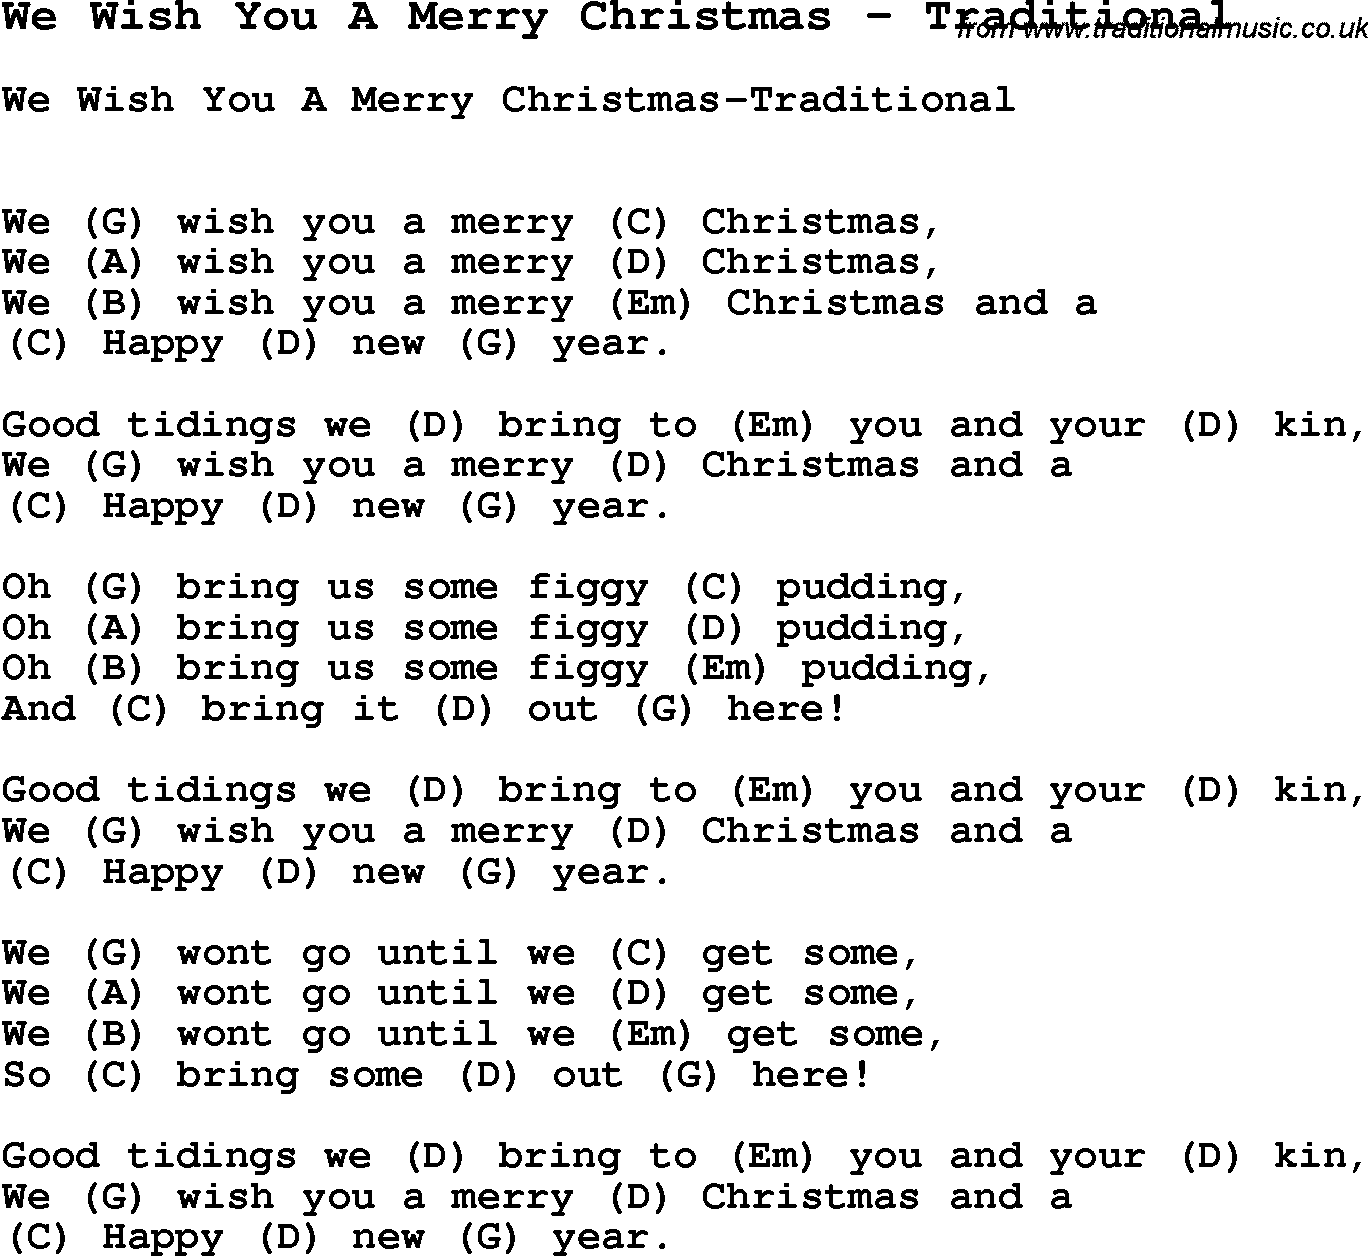 Song We Wish You A Merry Christmas by Traditional, song lyric for vocal performance plus ...